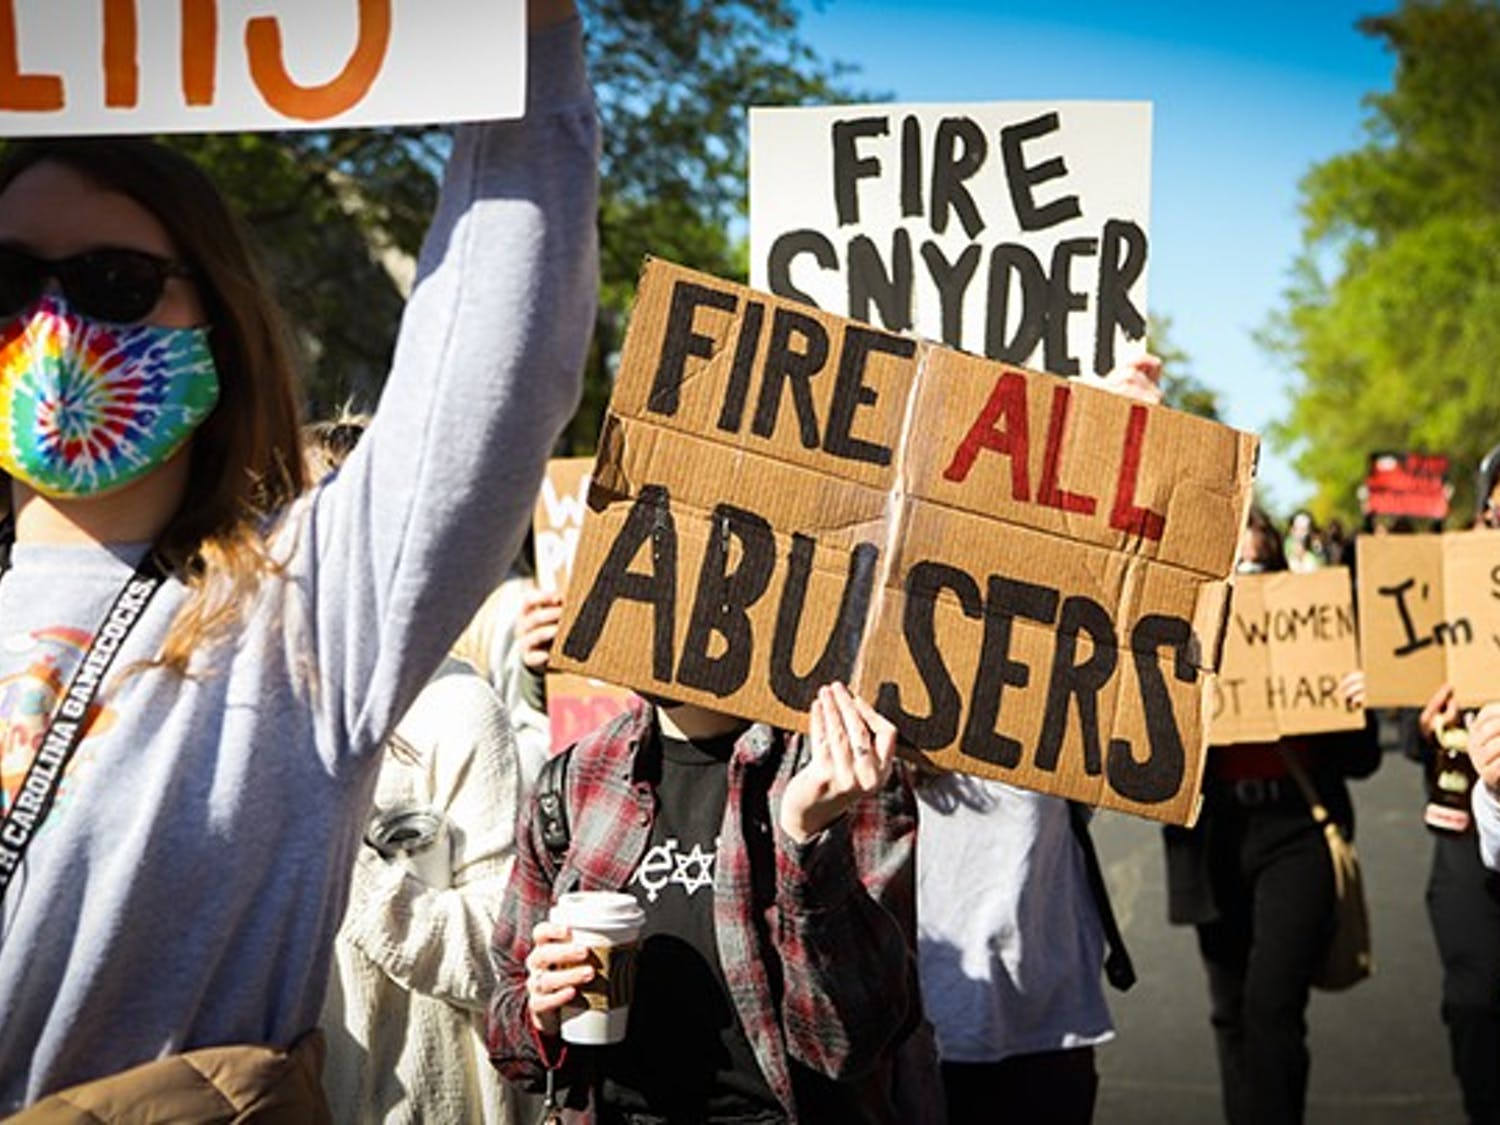 """A marching protestor holds a sign that has the quote, """"FIRE ALL ABUSERS"""" on it, which was written on many signs at the protest."""